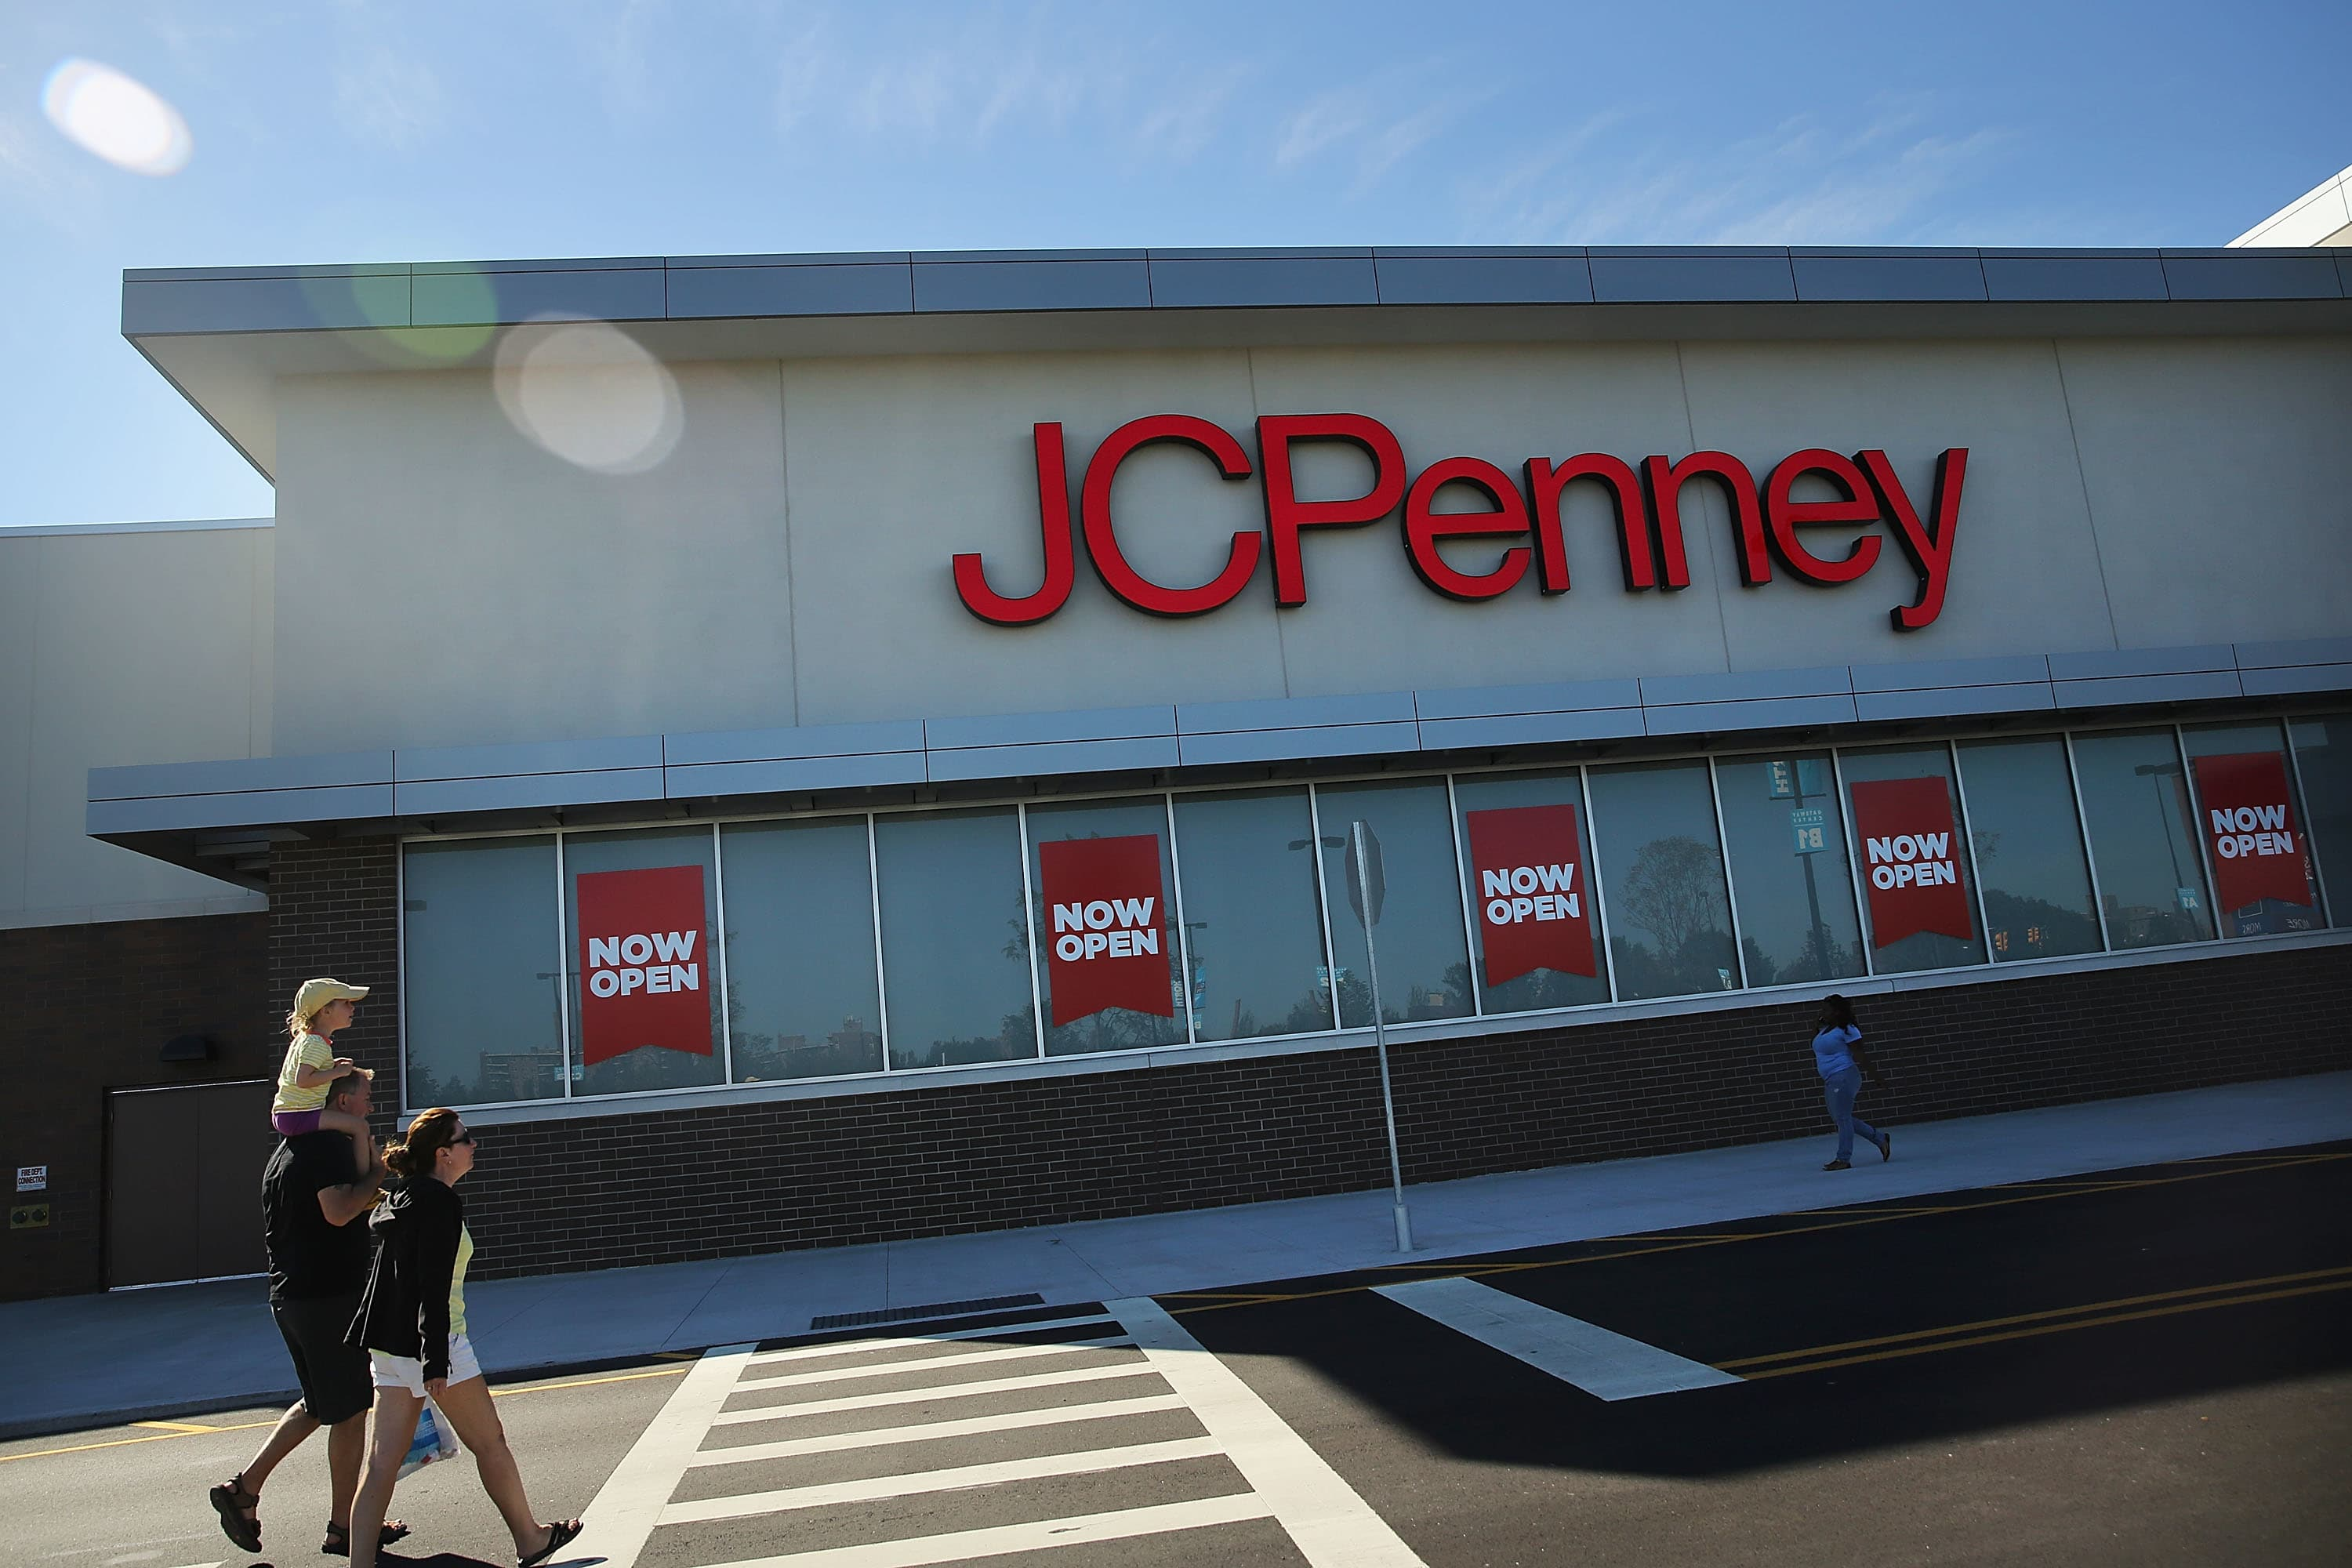 As JC Penney goes bankrupt, some question if it should emerge